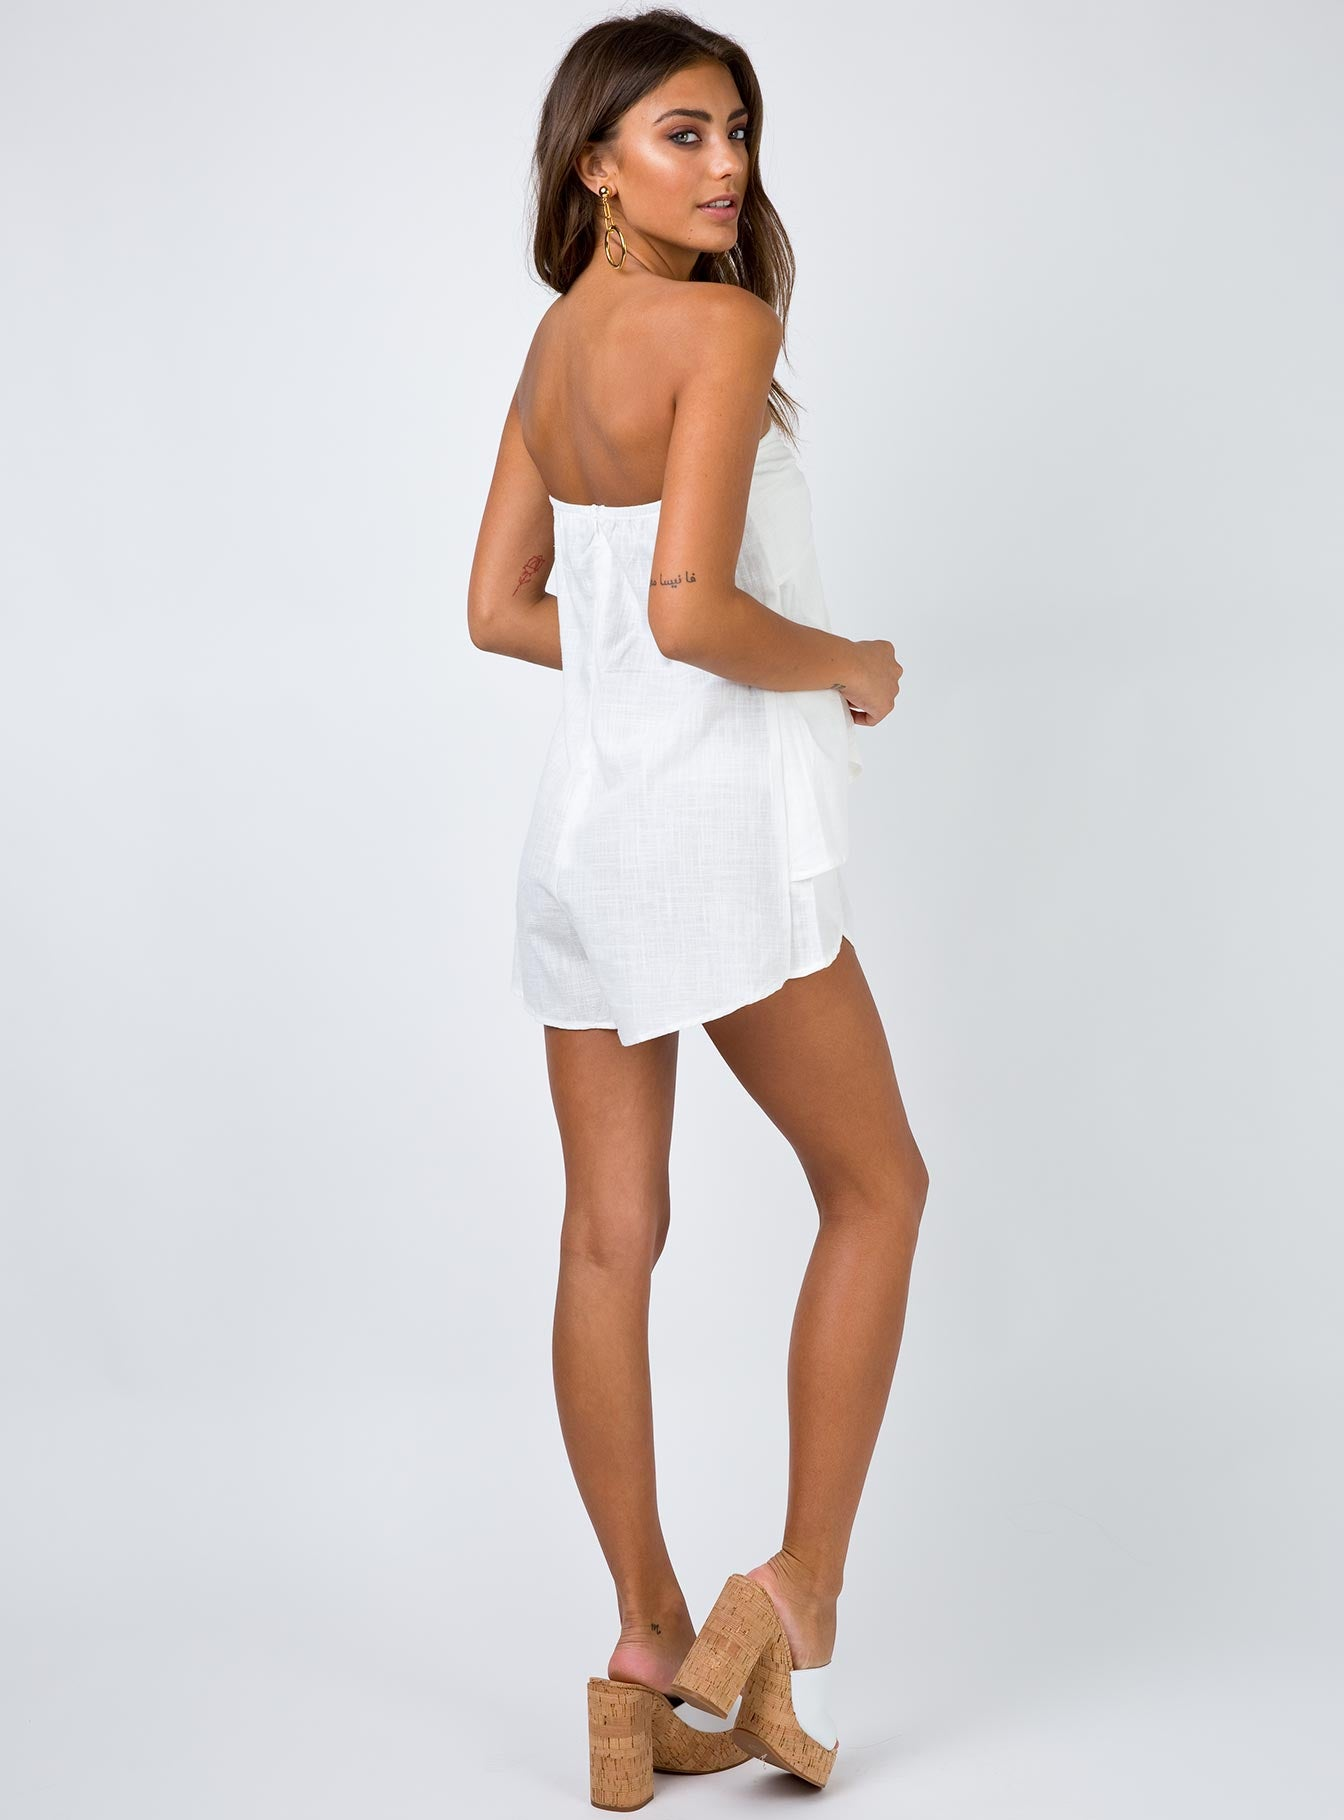 Mabel Mae Strapless Playsuit White